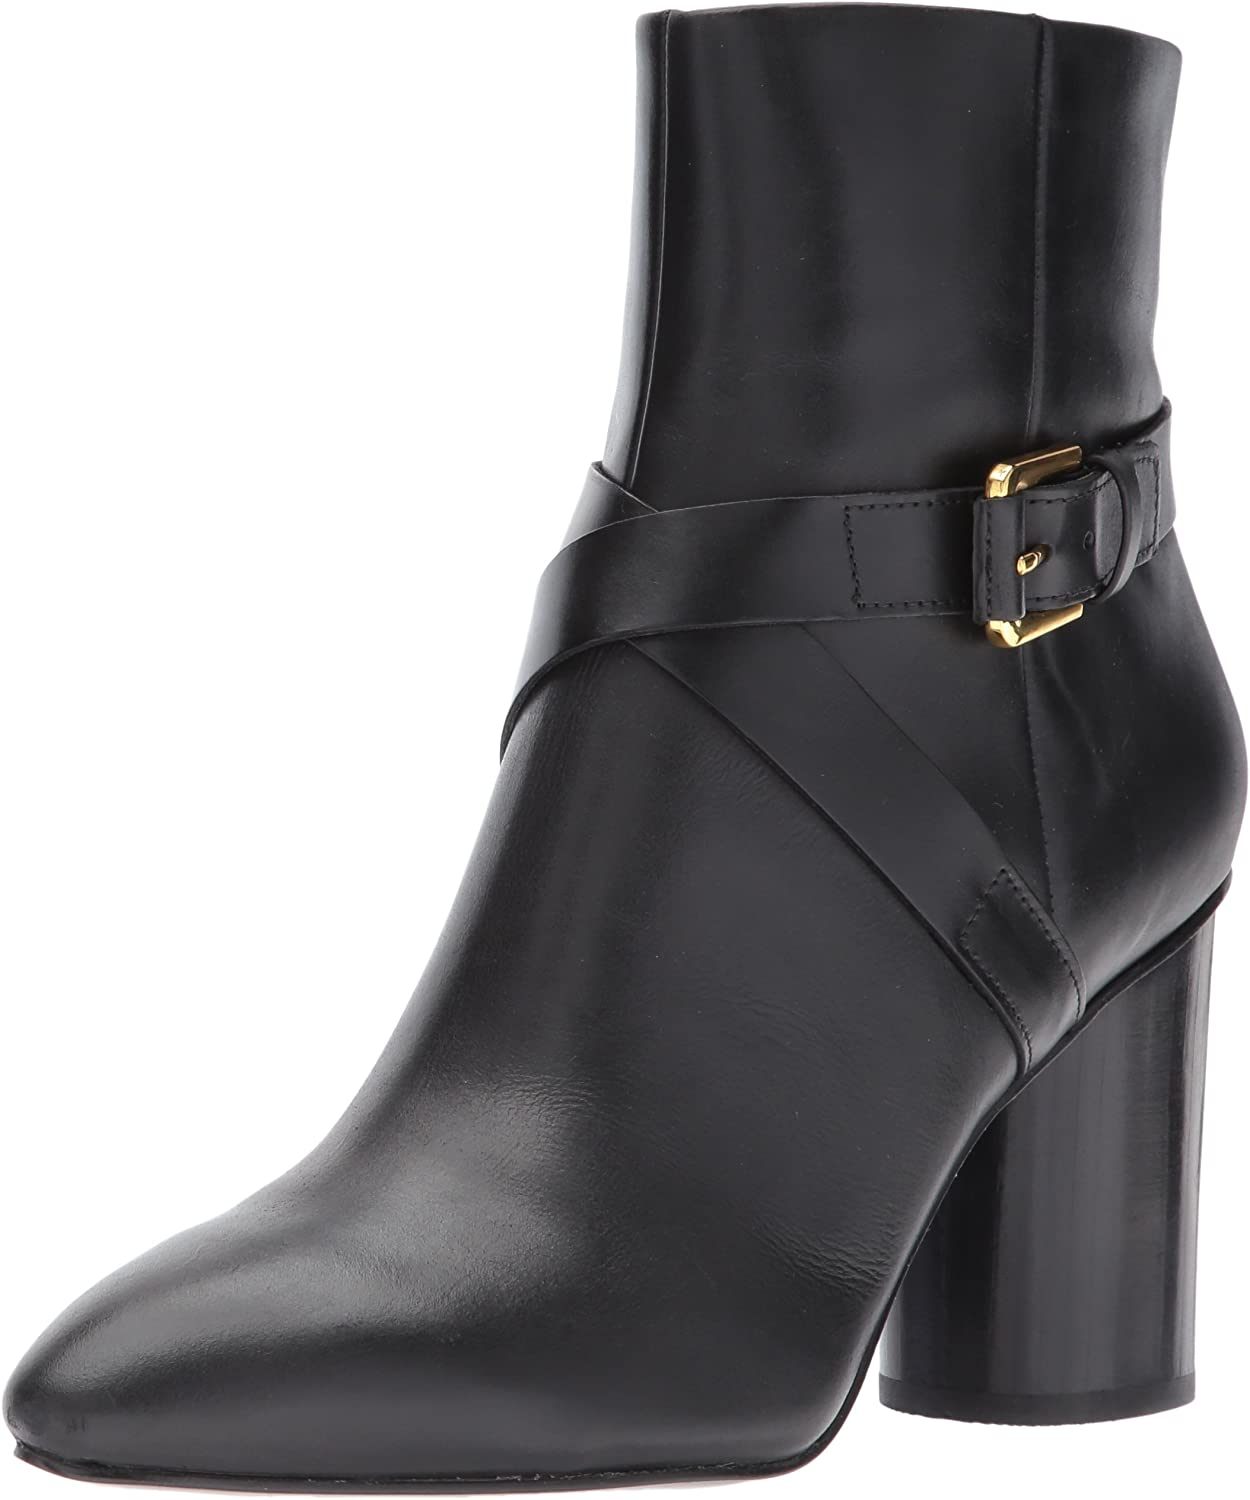 Nine West Women's Boot Ankle Raleigh Mall Max 87% OFF Cavanagh